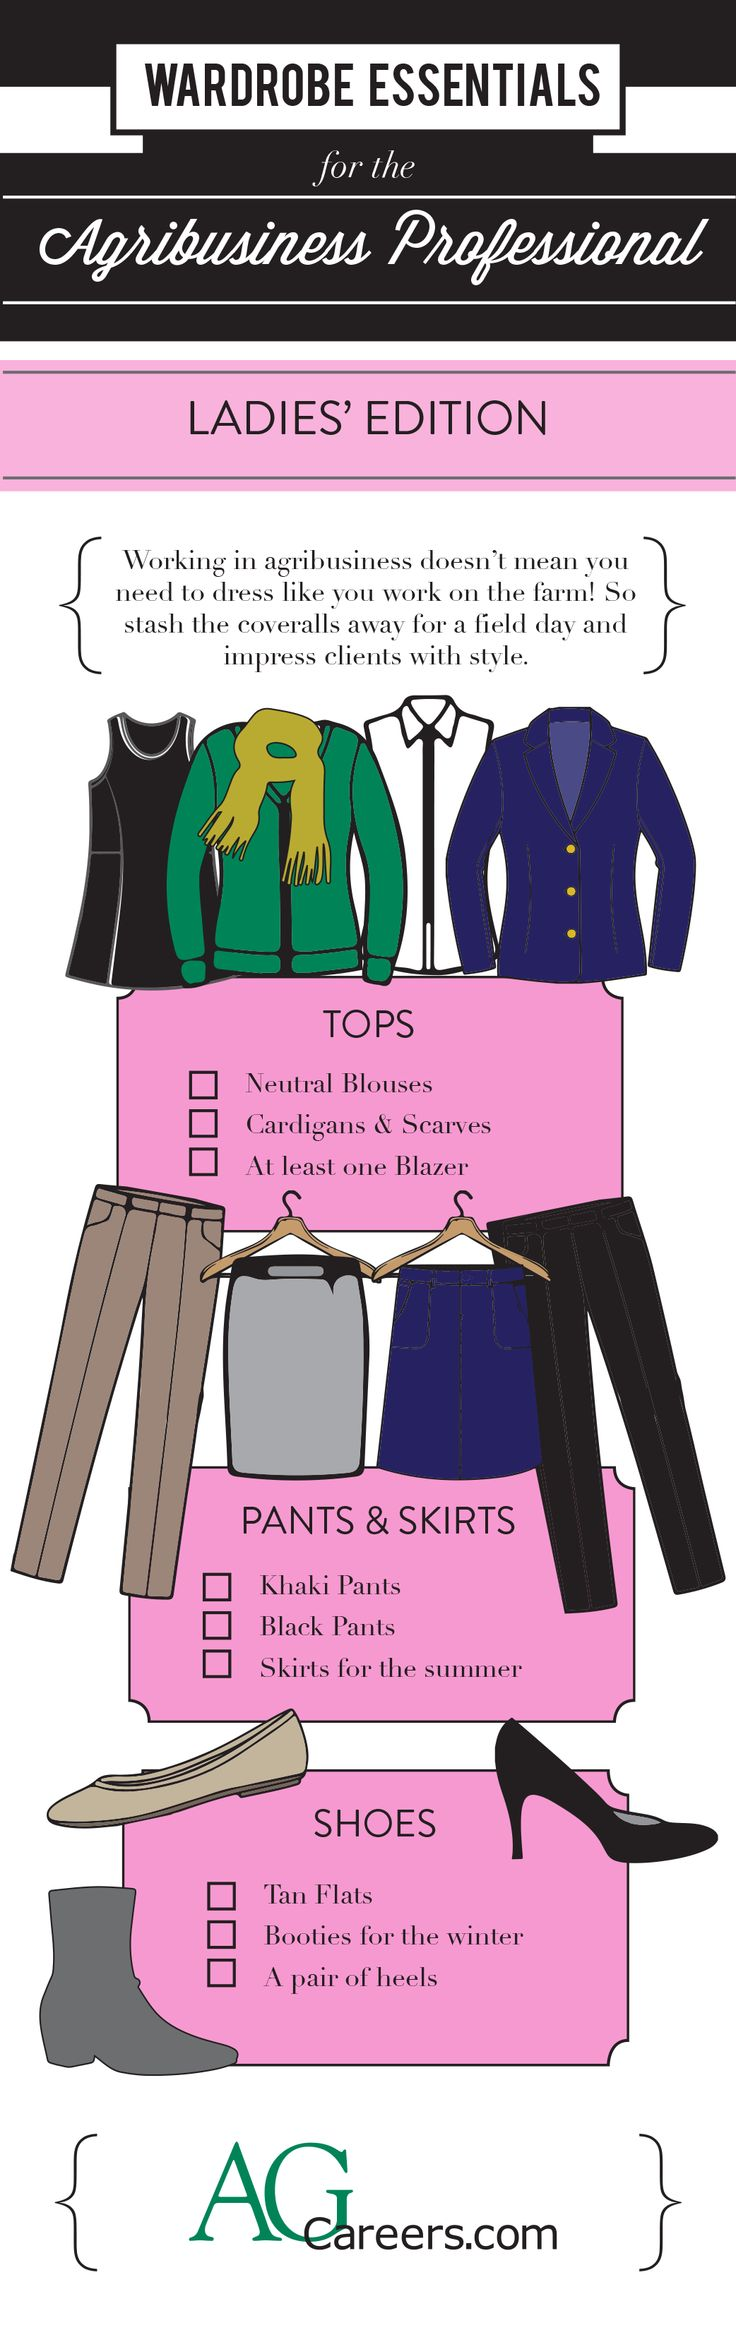 best images about dress for success women anne wardrobe essentials for the w in agribusiness blog agcareers